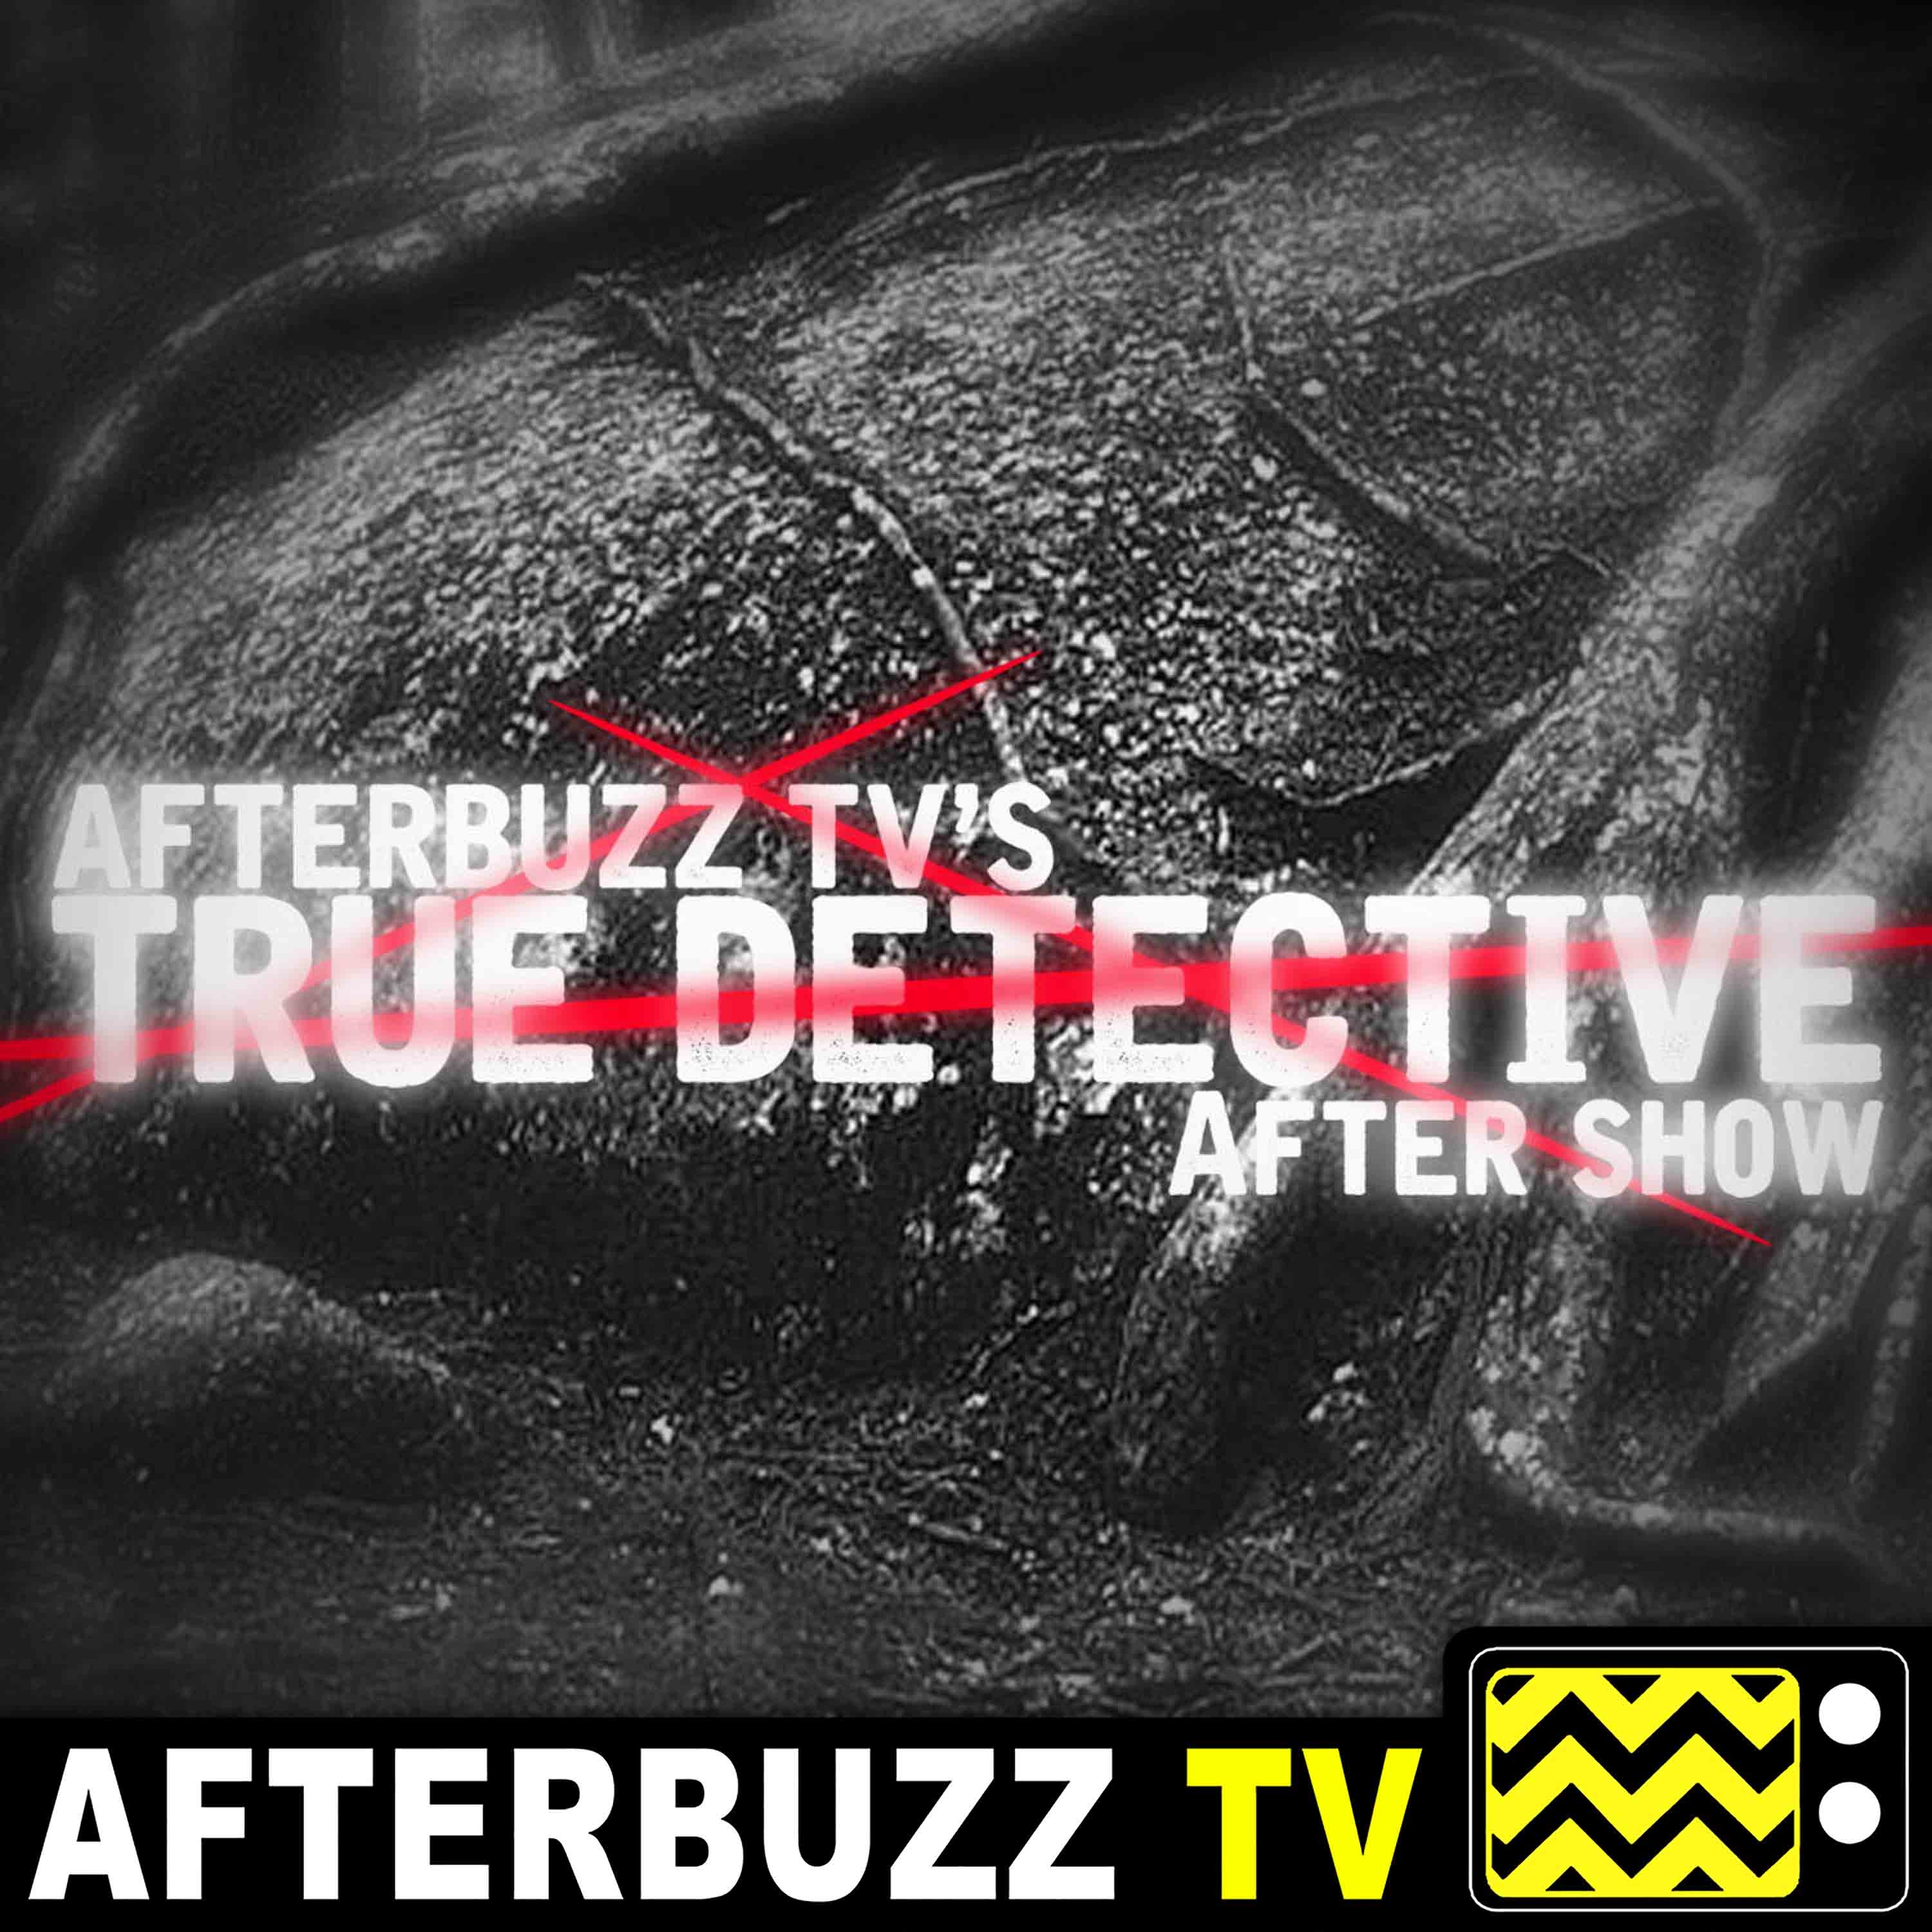 True Detective S:2 | Down Will Come E:4 | AfterBuzz TV AfterShow